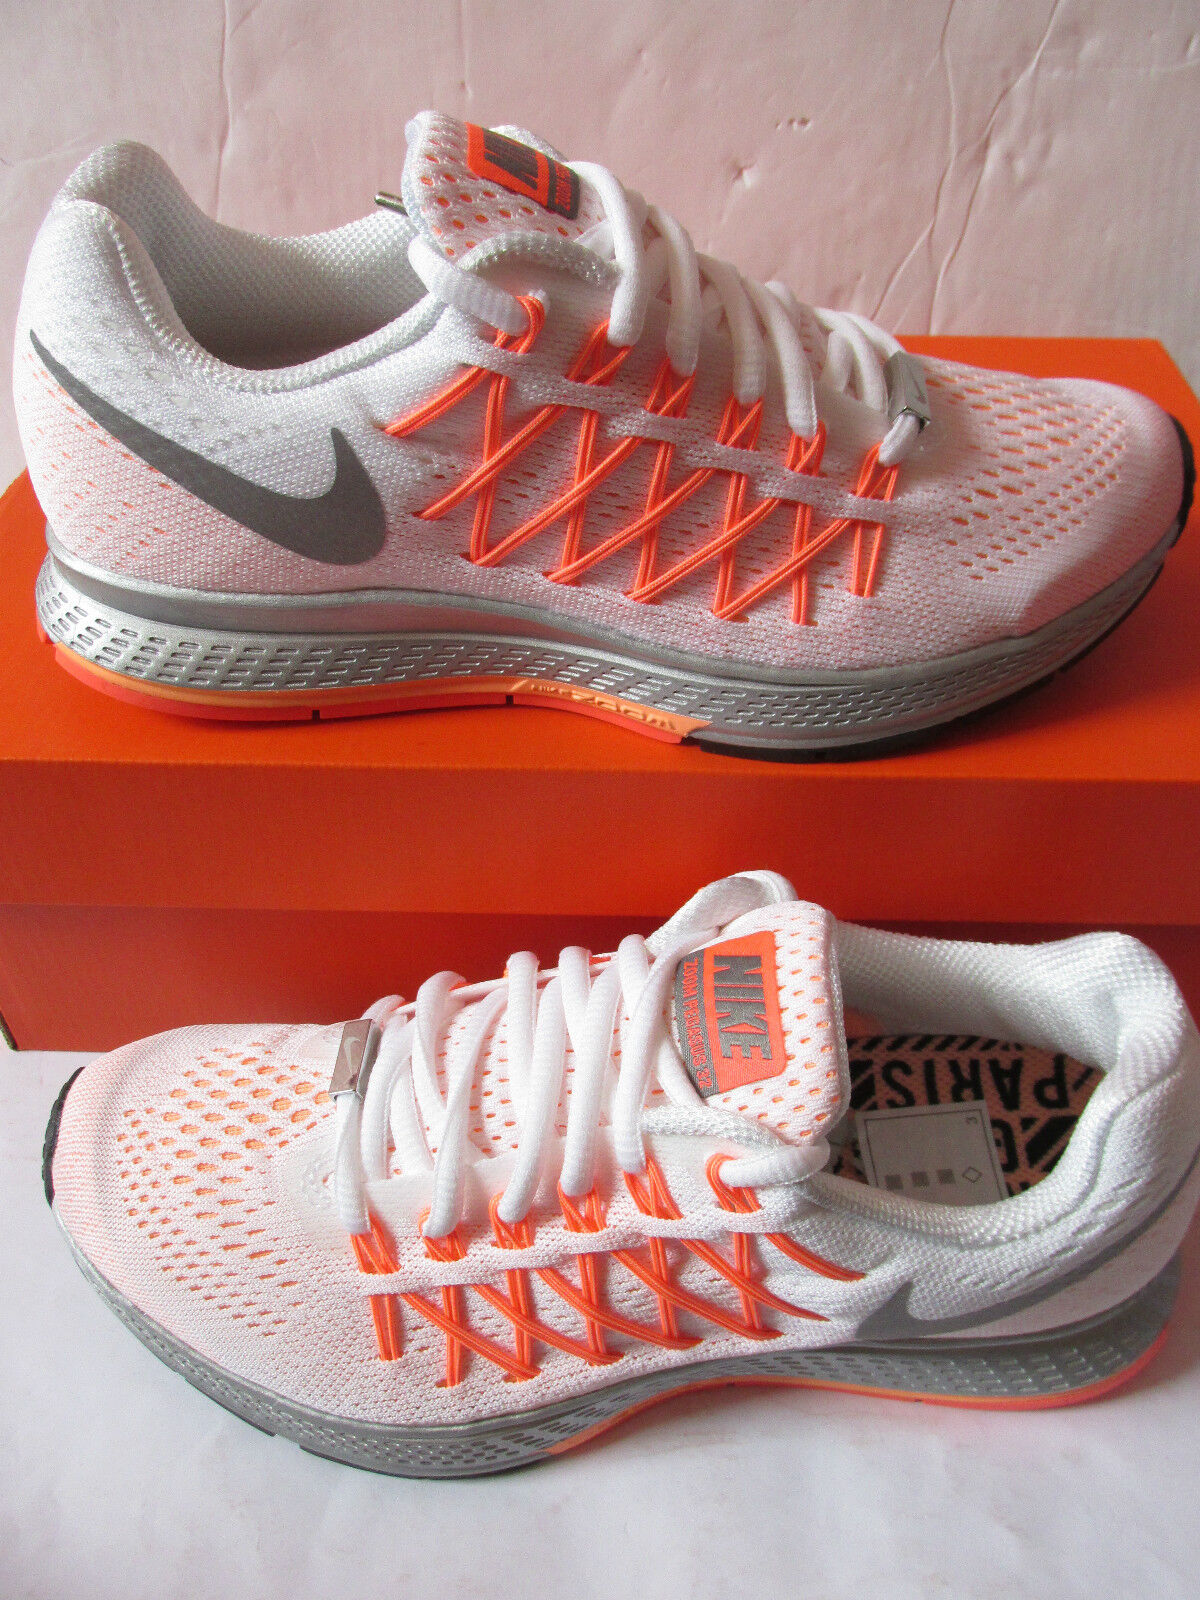 nike womens air zoom pegaus 32 NWM running trainers 789694 100 sneakers shoes